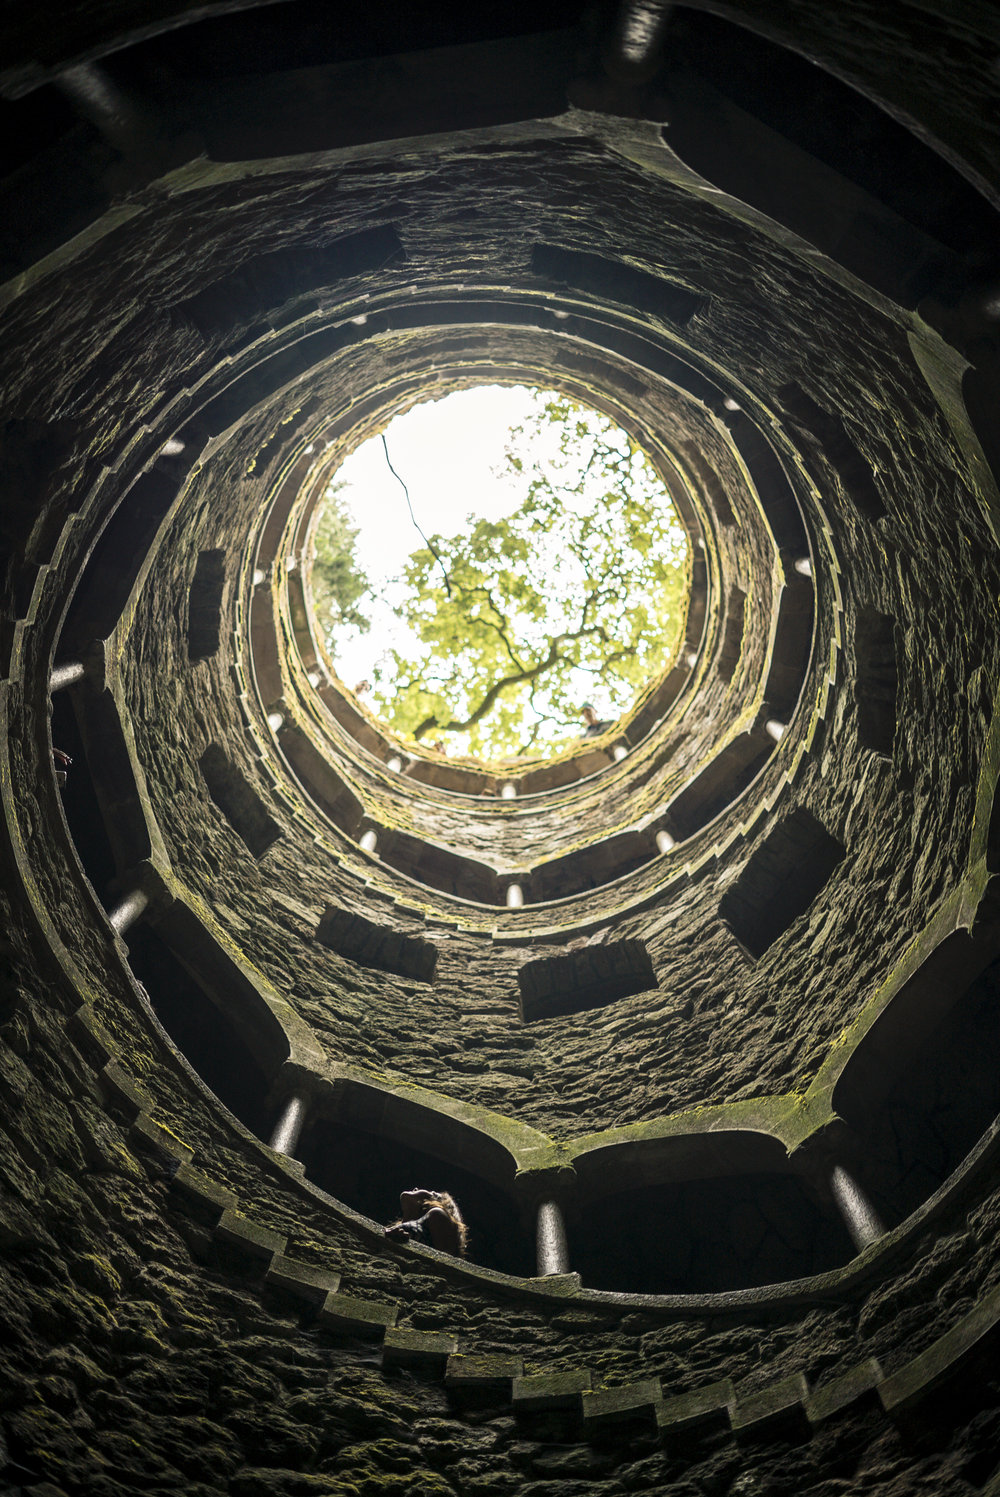 Quinta de Regaleira, don't miss this.